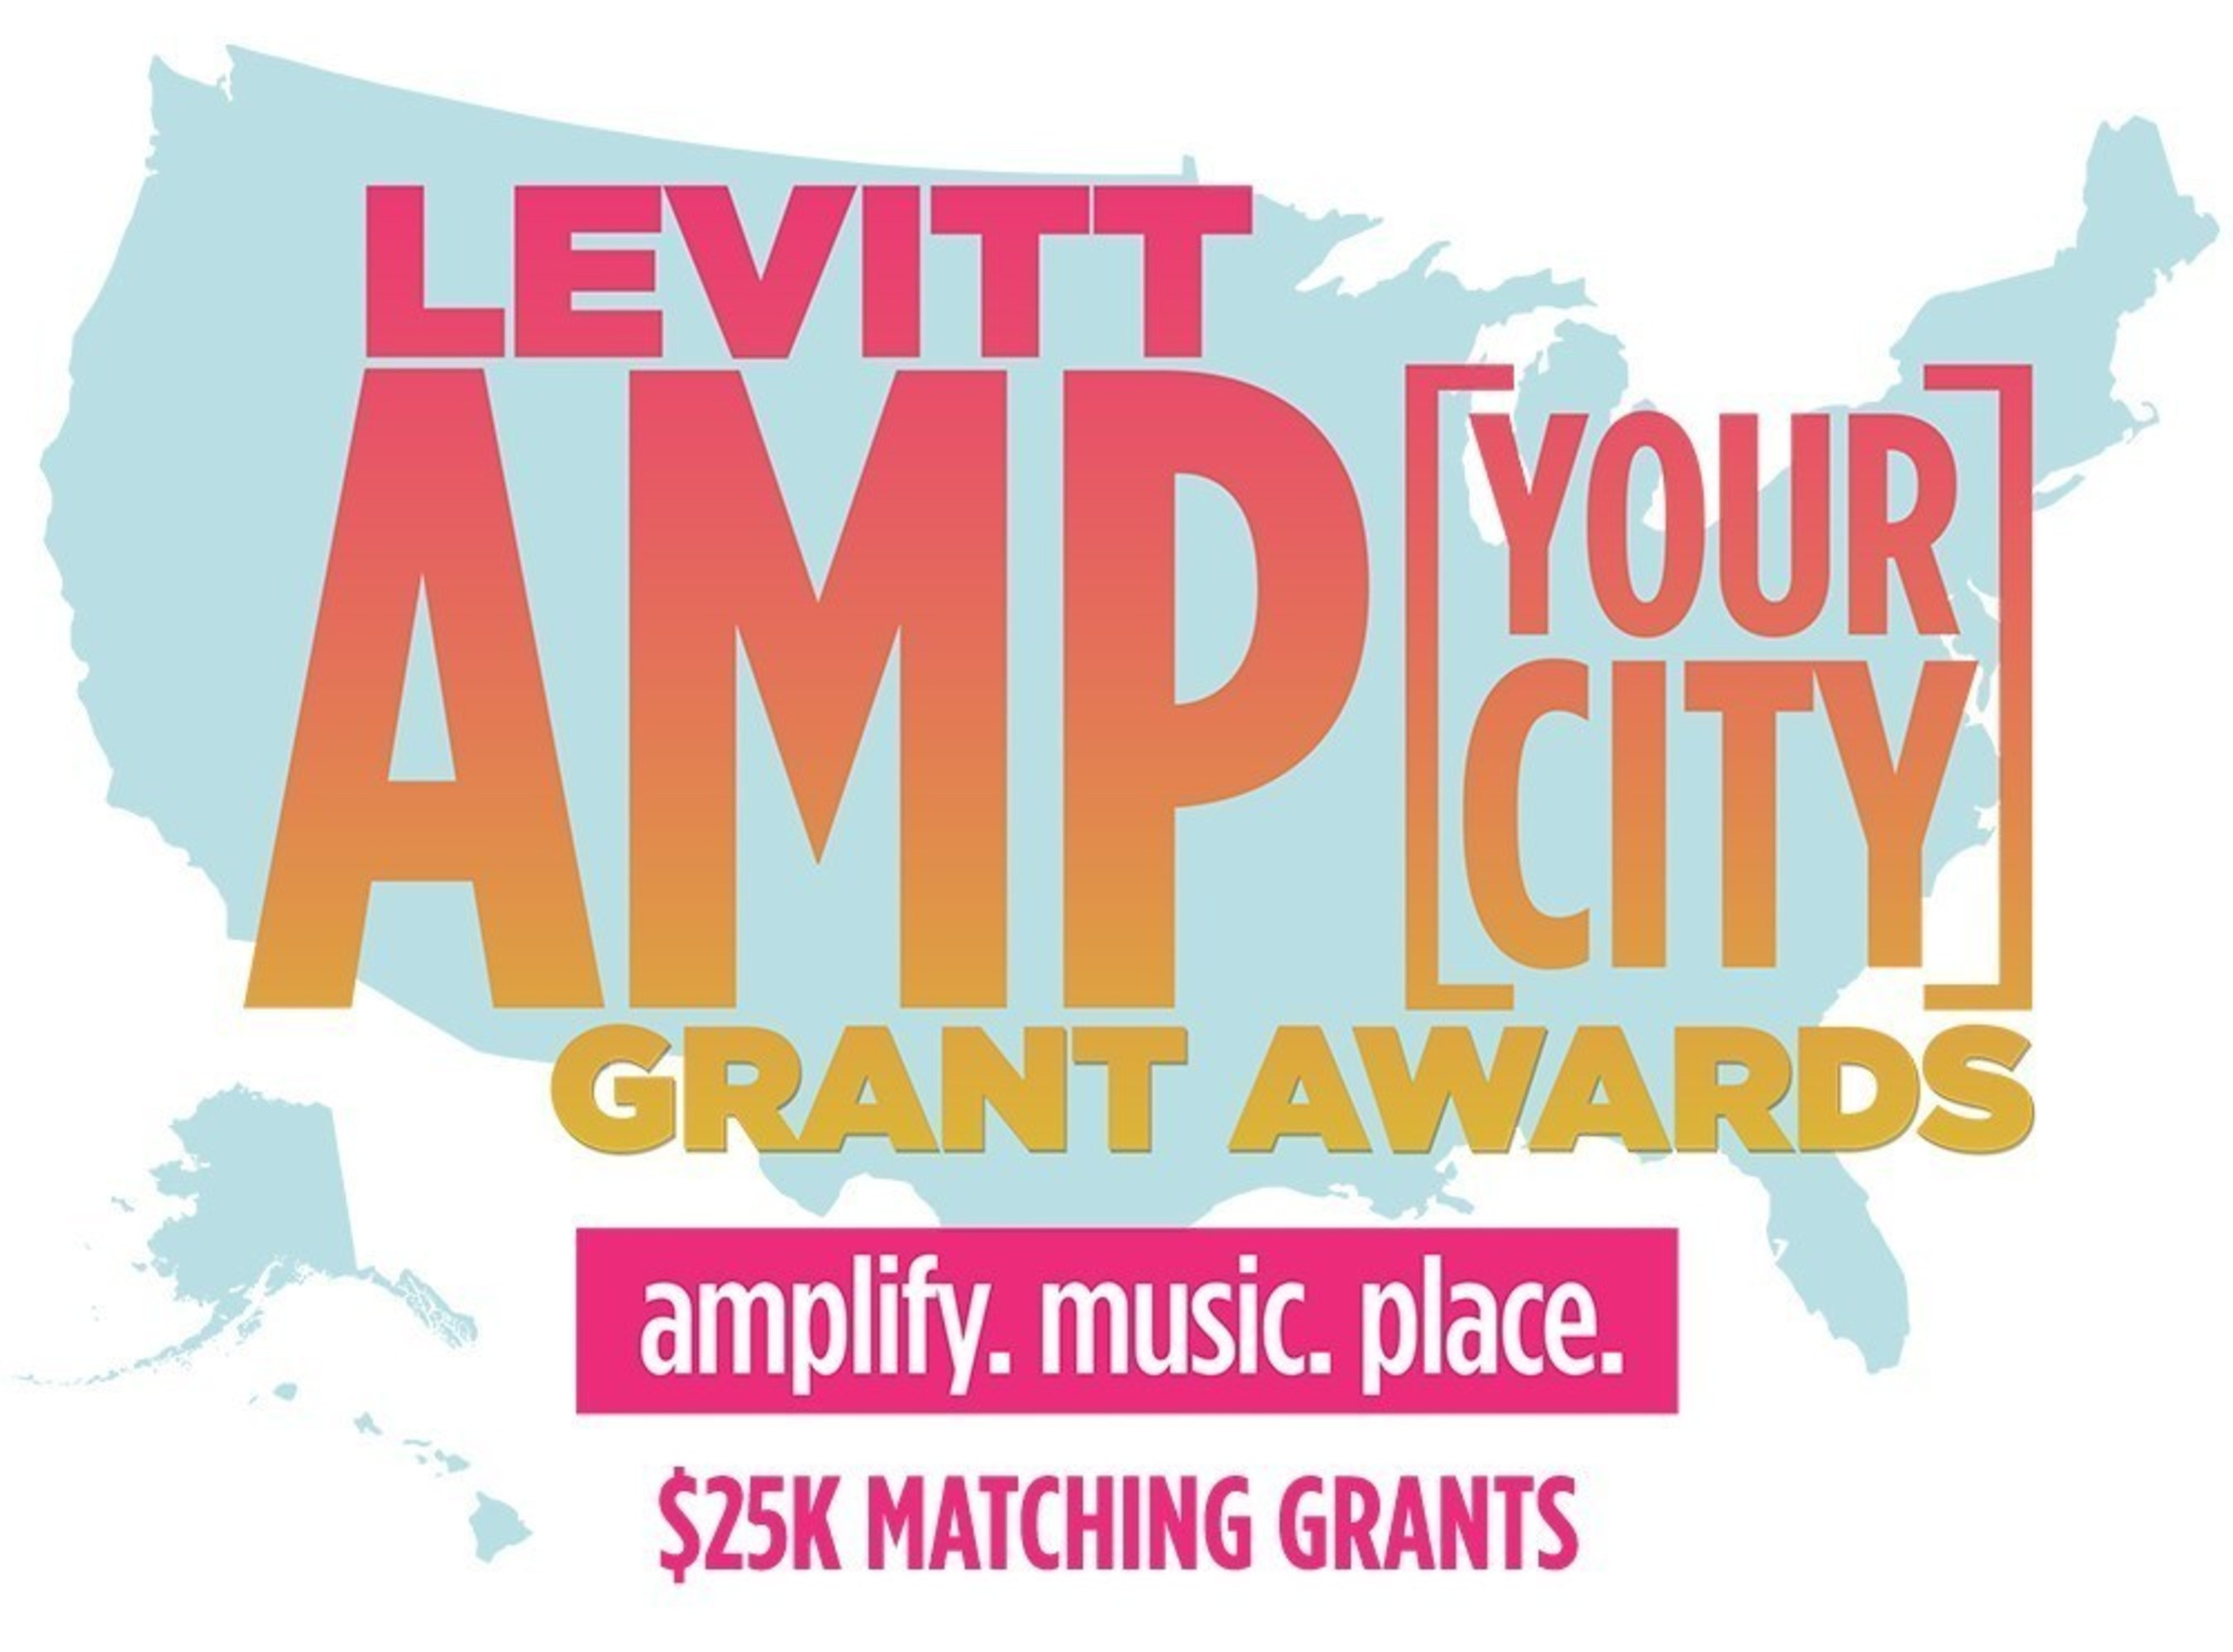 Applications Now Open for the 2017 Levitt AMP [Your City